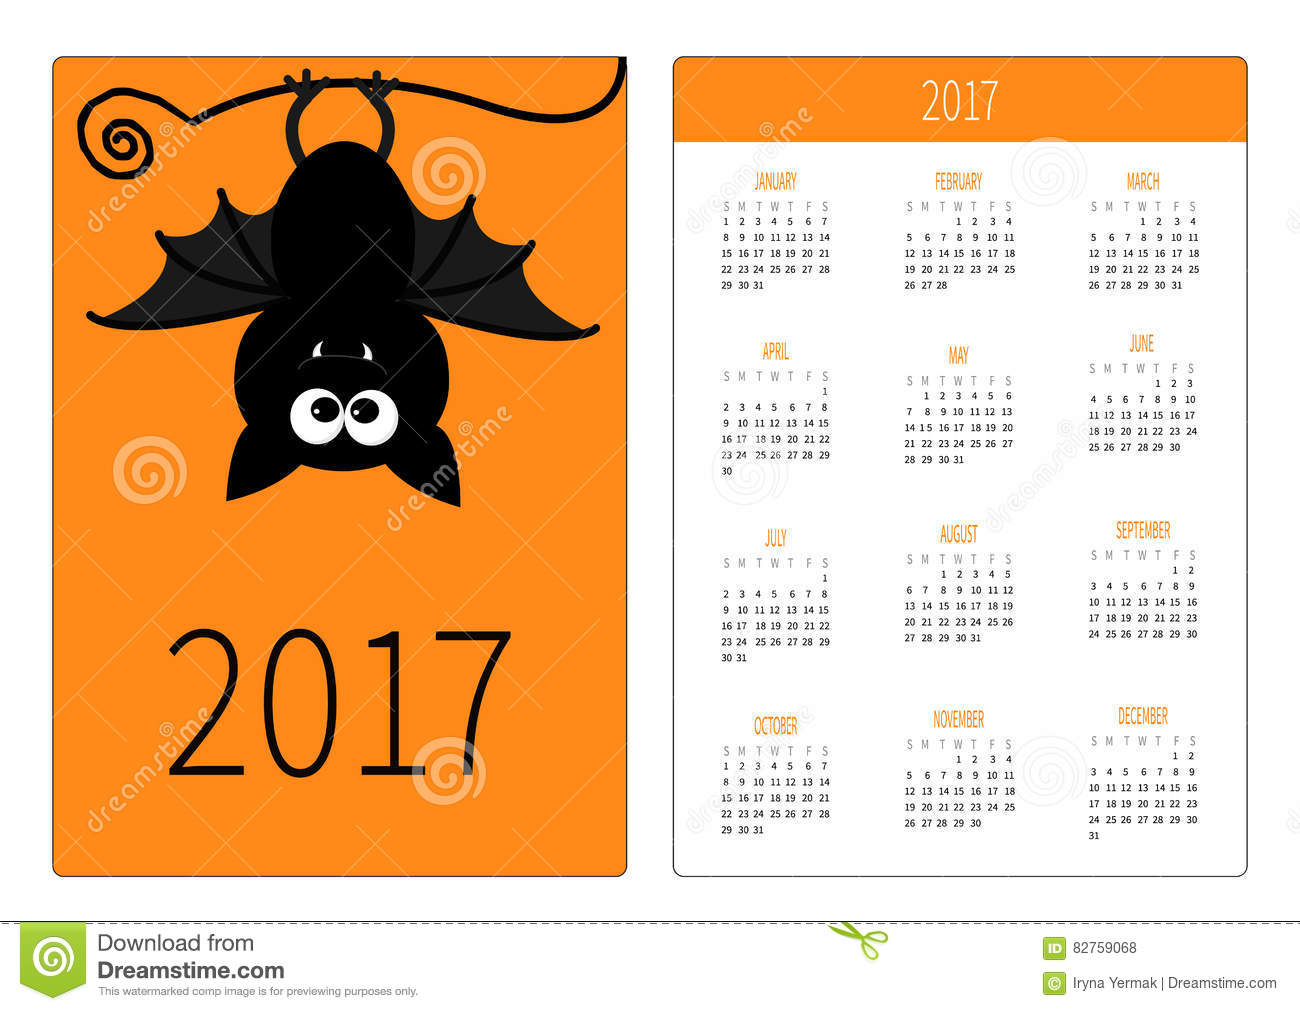 Flat Design Vertical Orientation Template Cute Cartoon Hanging Bat Happy Halloween Symbol Orange Background Vector Illustration